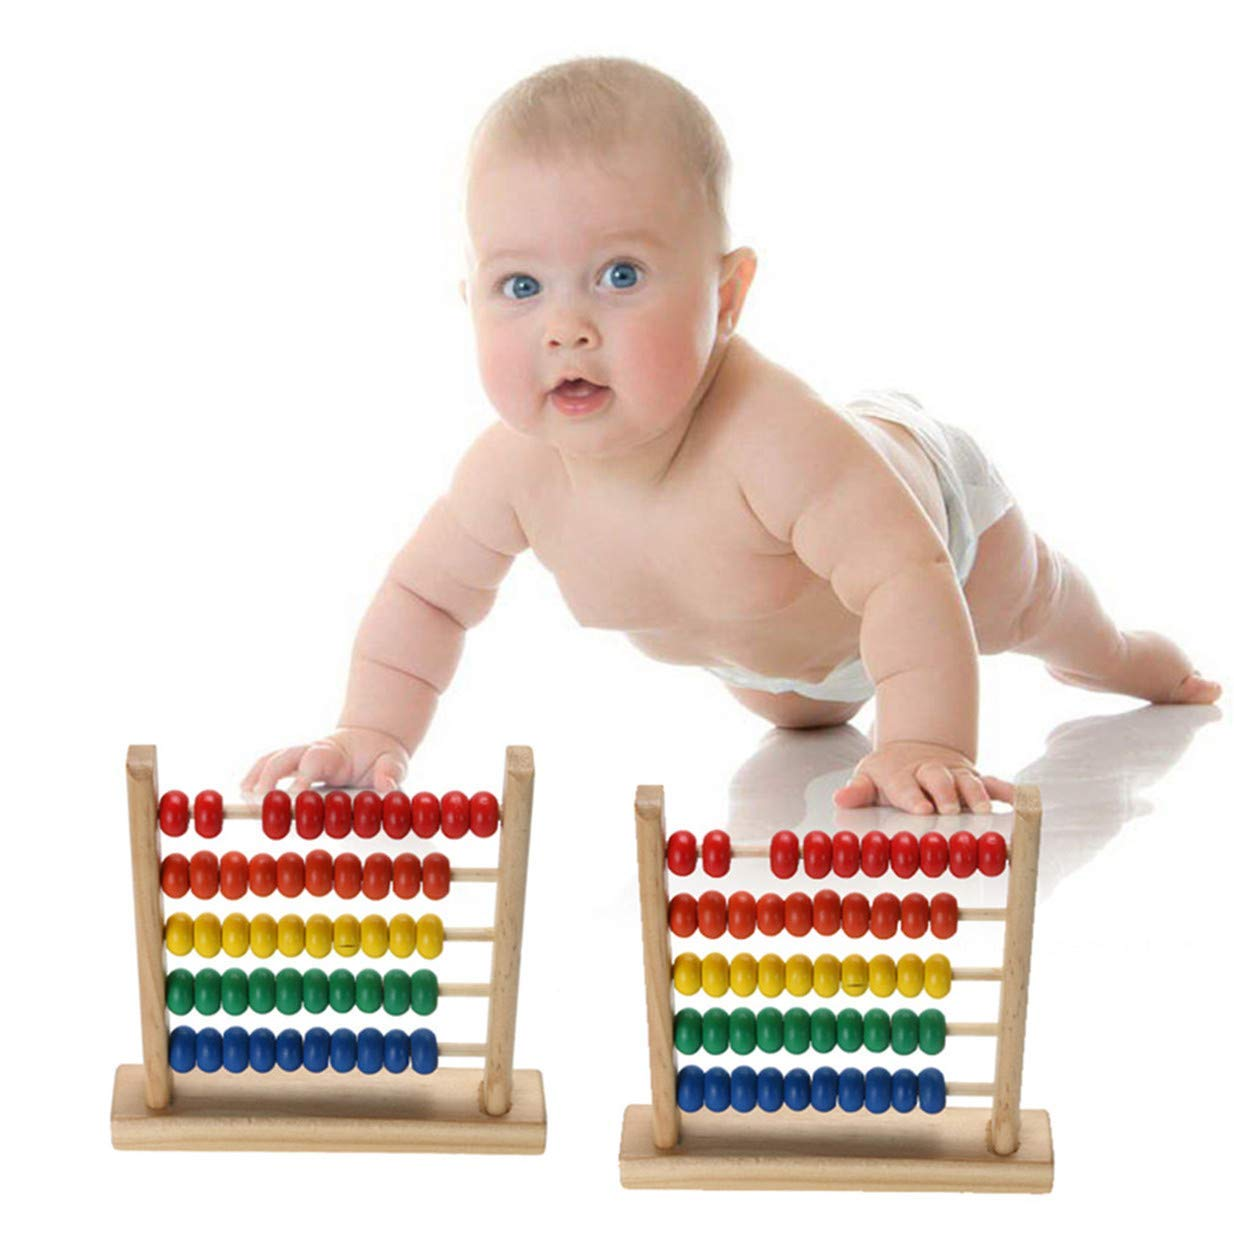 Xeminor Premium Mini Abacus Children Early Mathematics Learning Toy Numbers Counting Calculate Beads Educational Toys